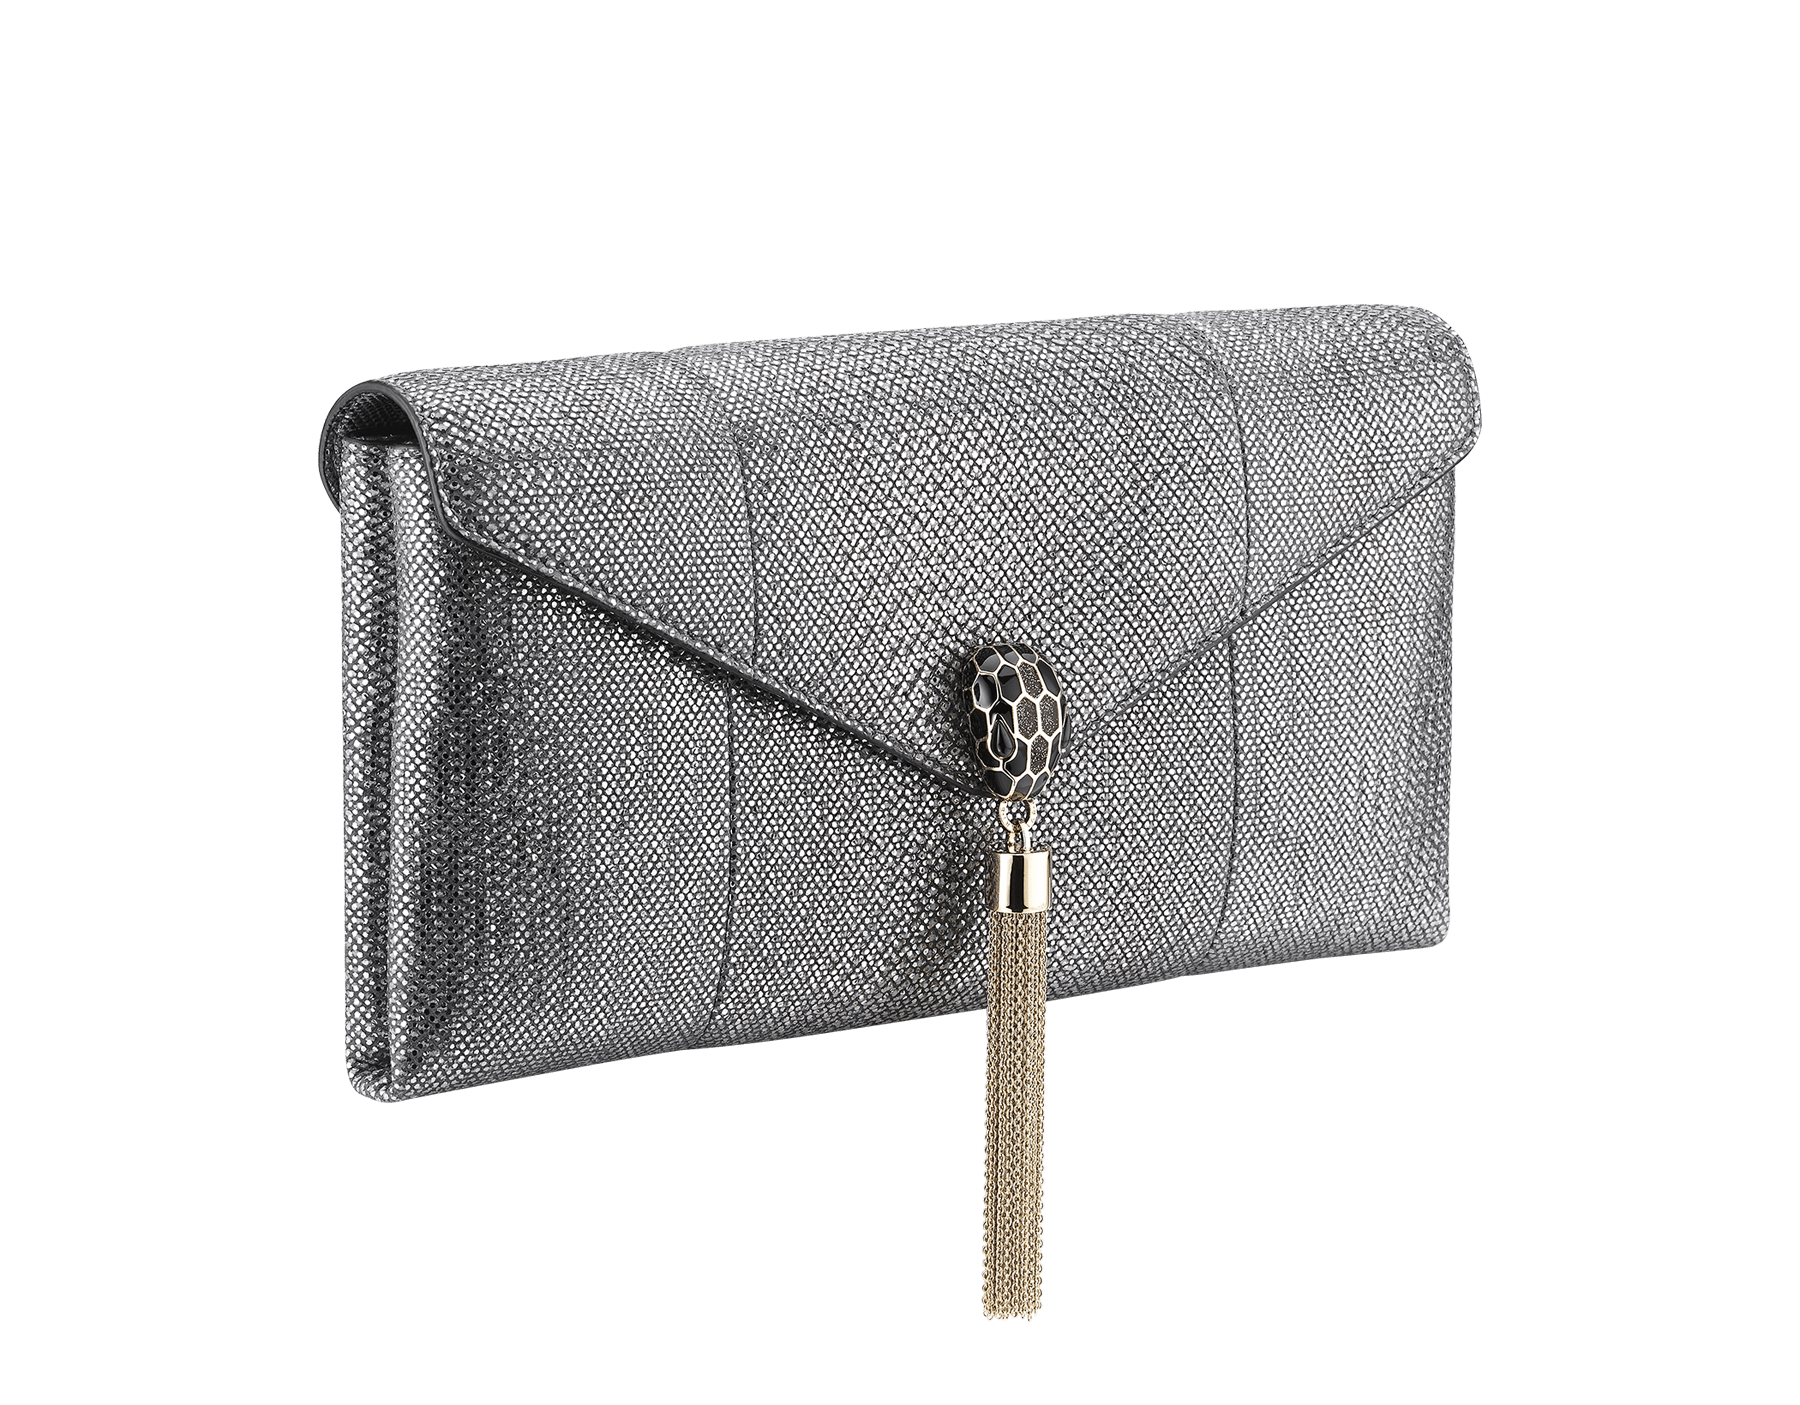 Serpenti evening clutch in charcoal diamond metallic karung skin. Snakehead stud closure with tassel in light gold plated brass decorated with black and glitter charcoal diamond enamel, and black onyx eyes. 288165 image 2